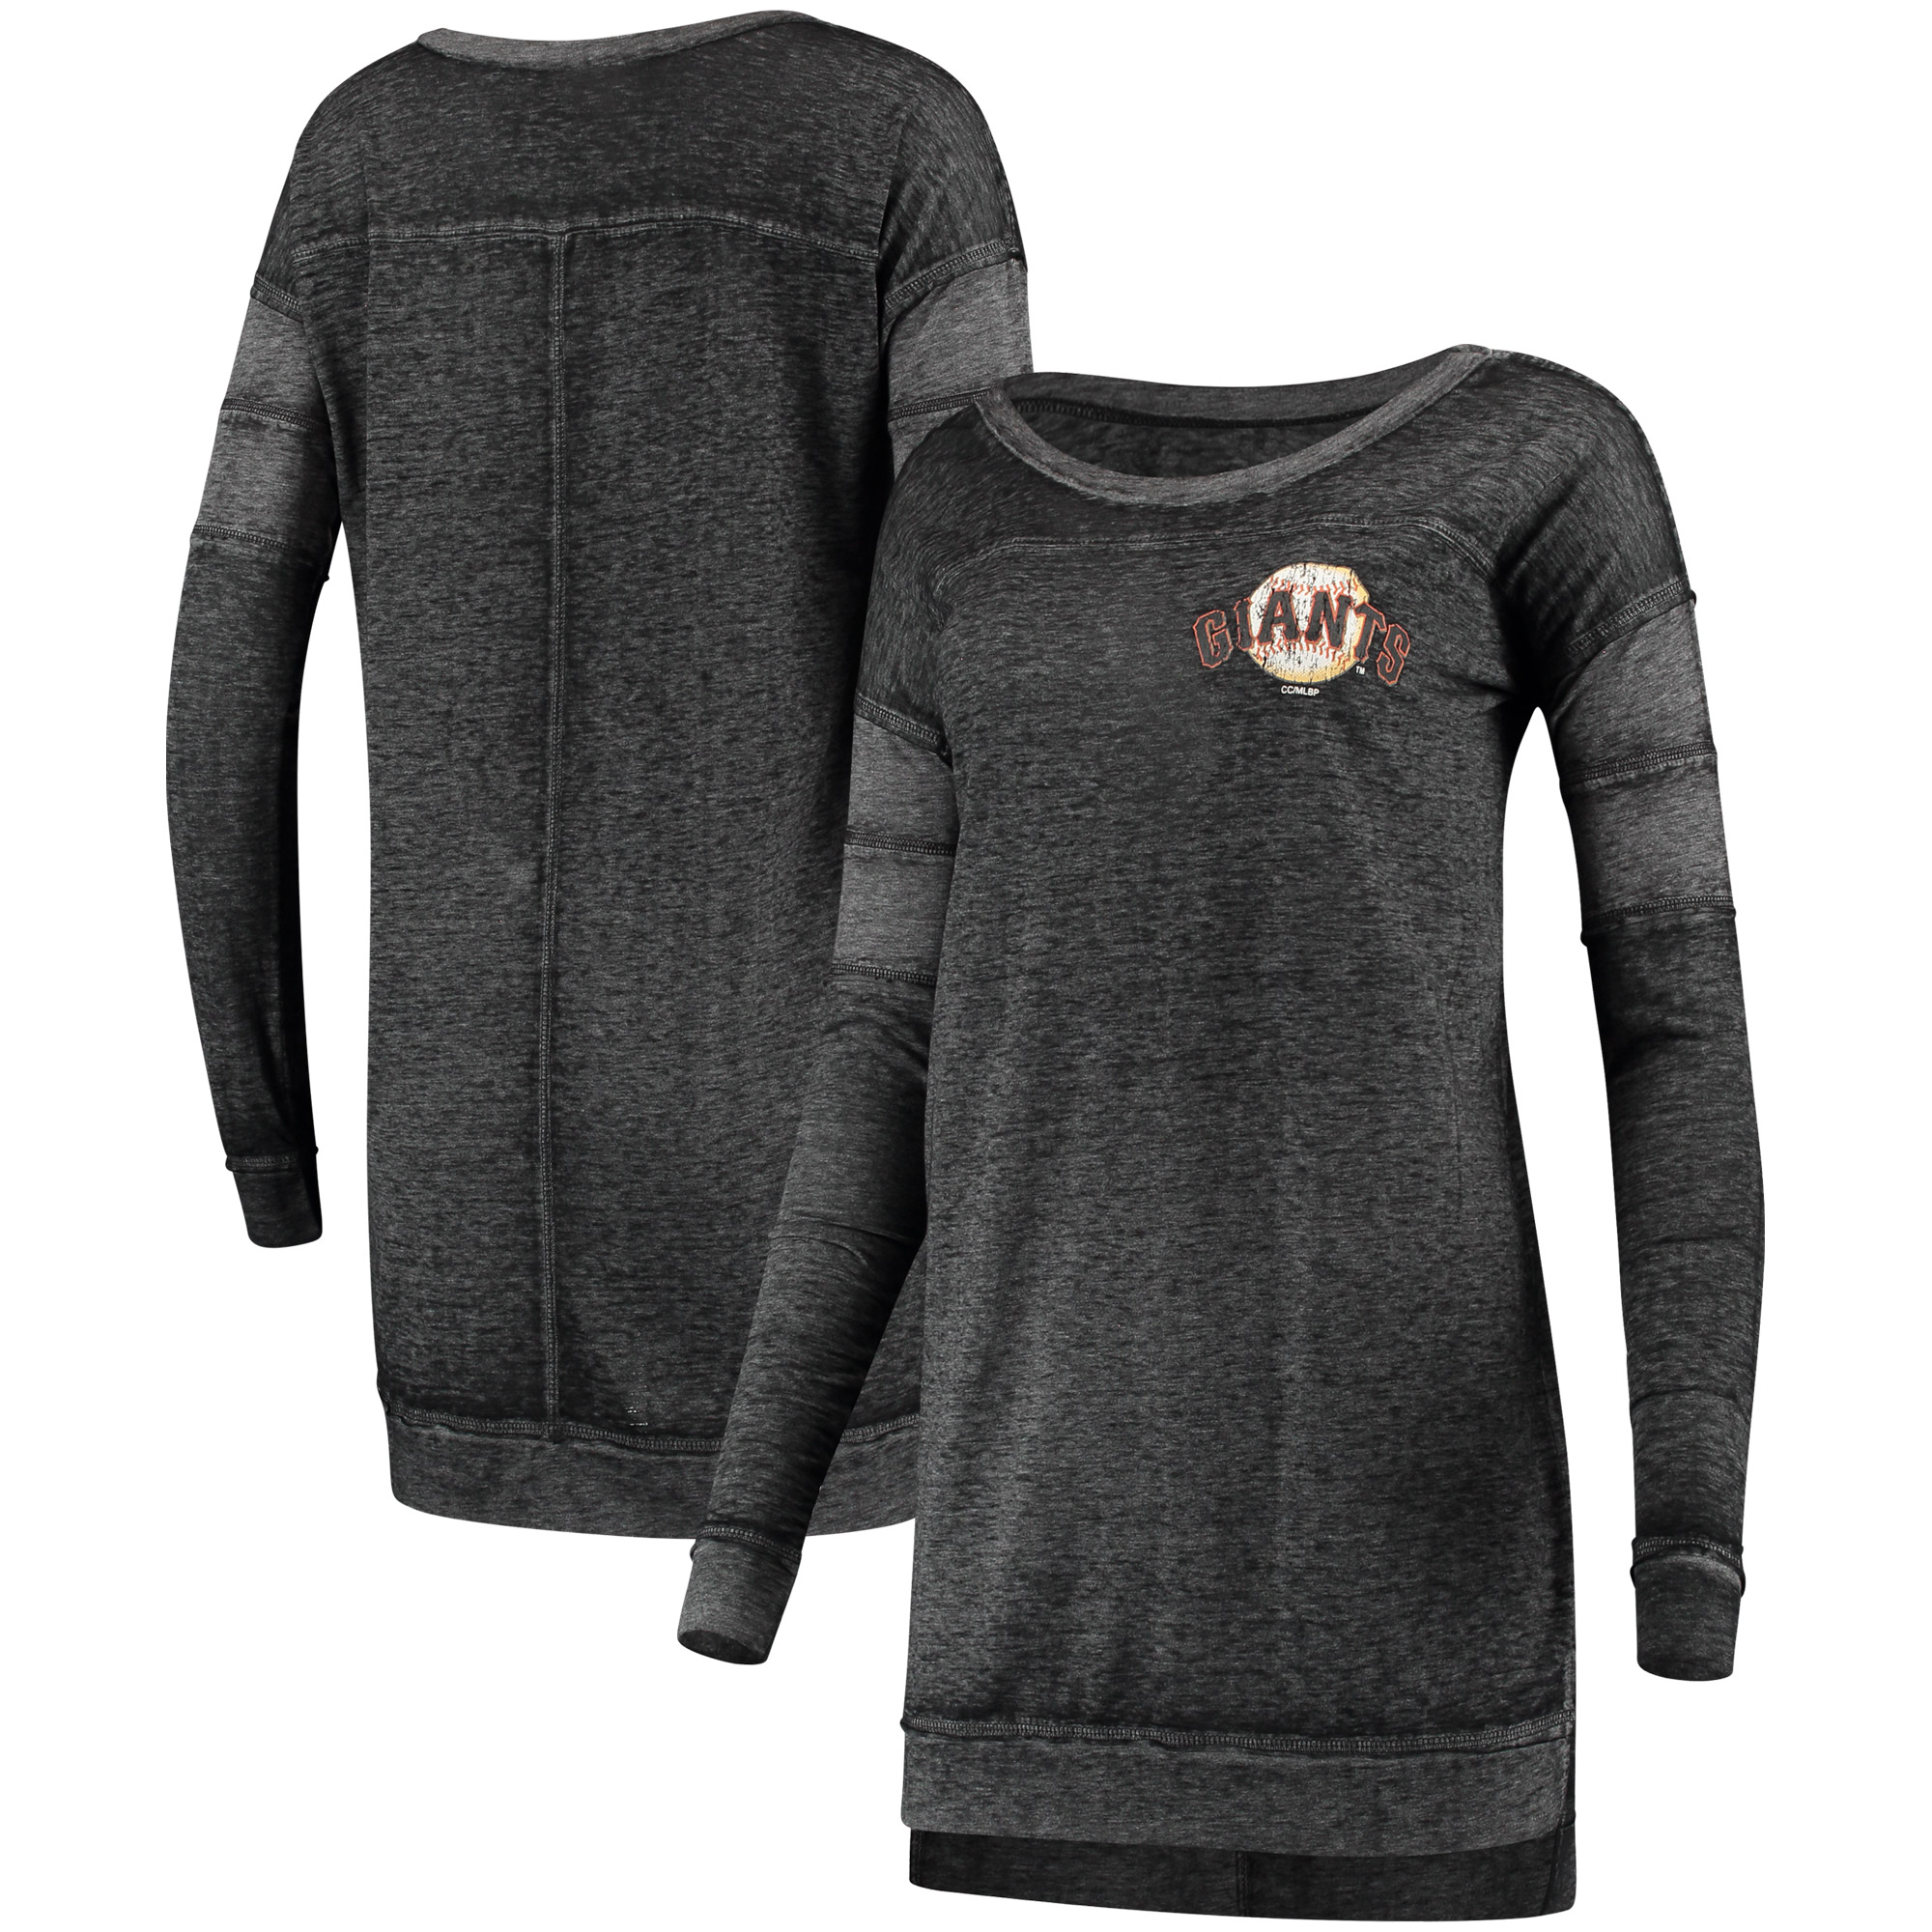 San Francisco Giants Concepts Sport Women's Touchstone Nightshirt - Black